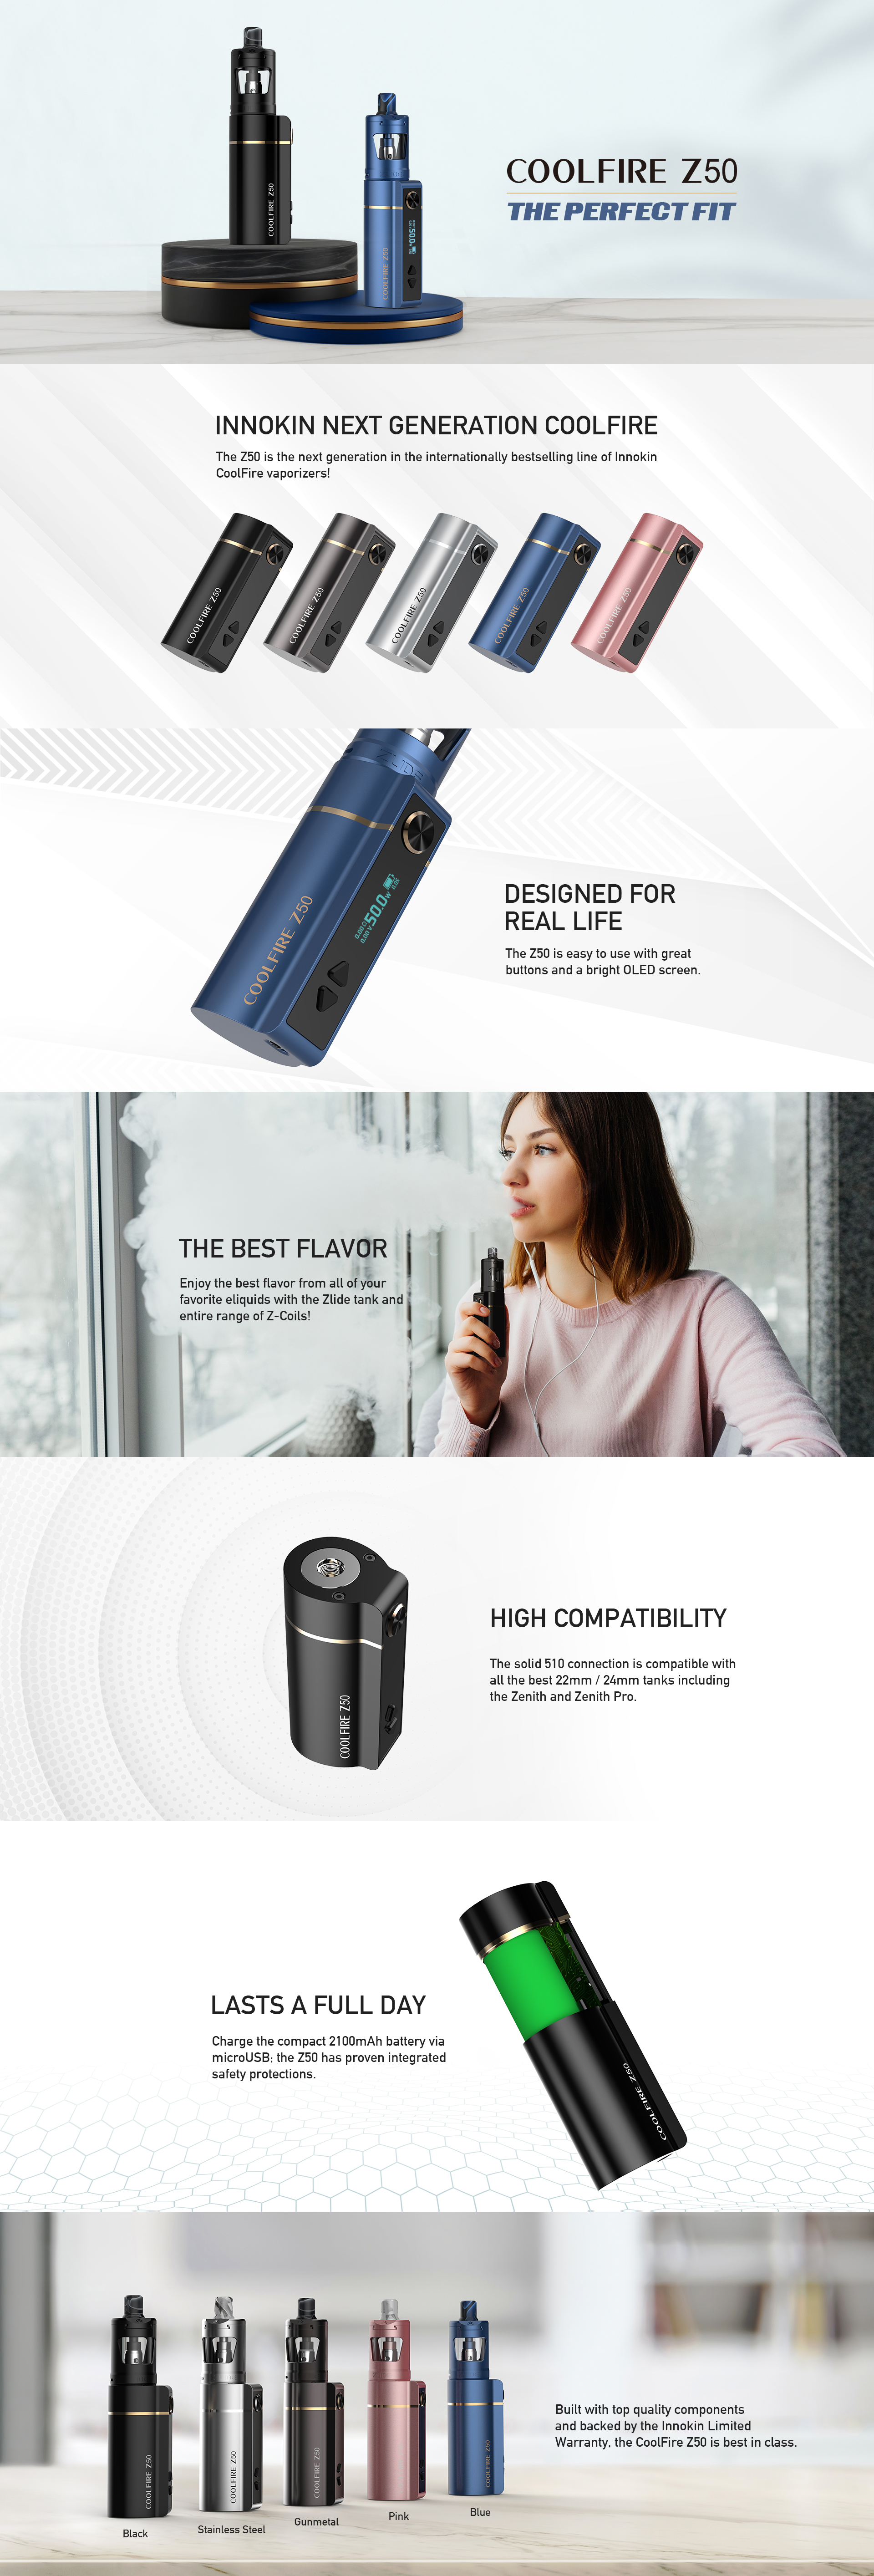 INNOKIN Coolfire Z50 Product Page